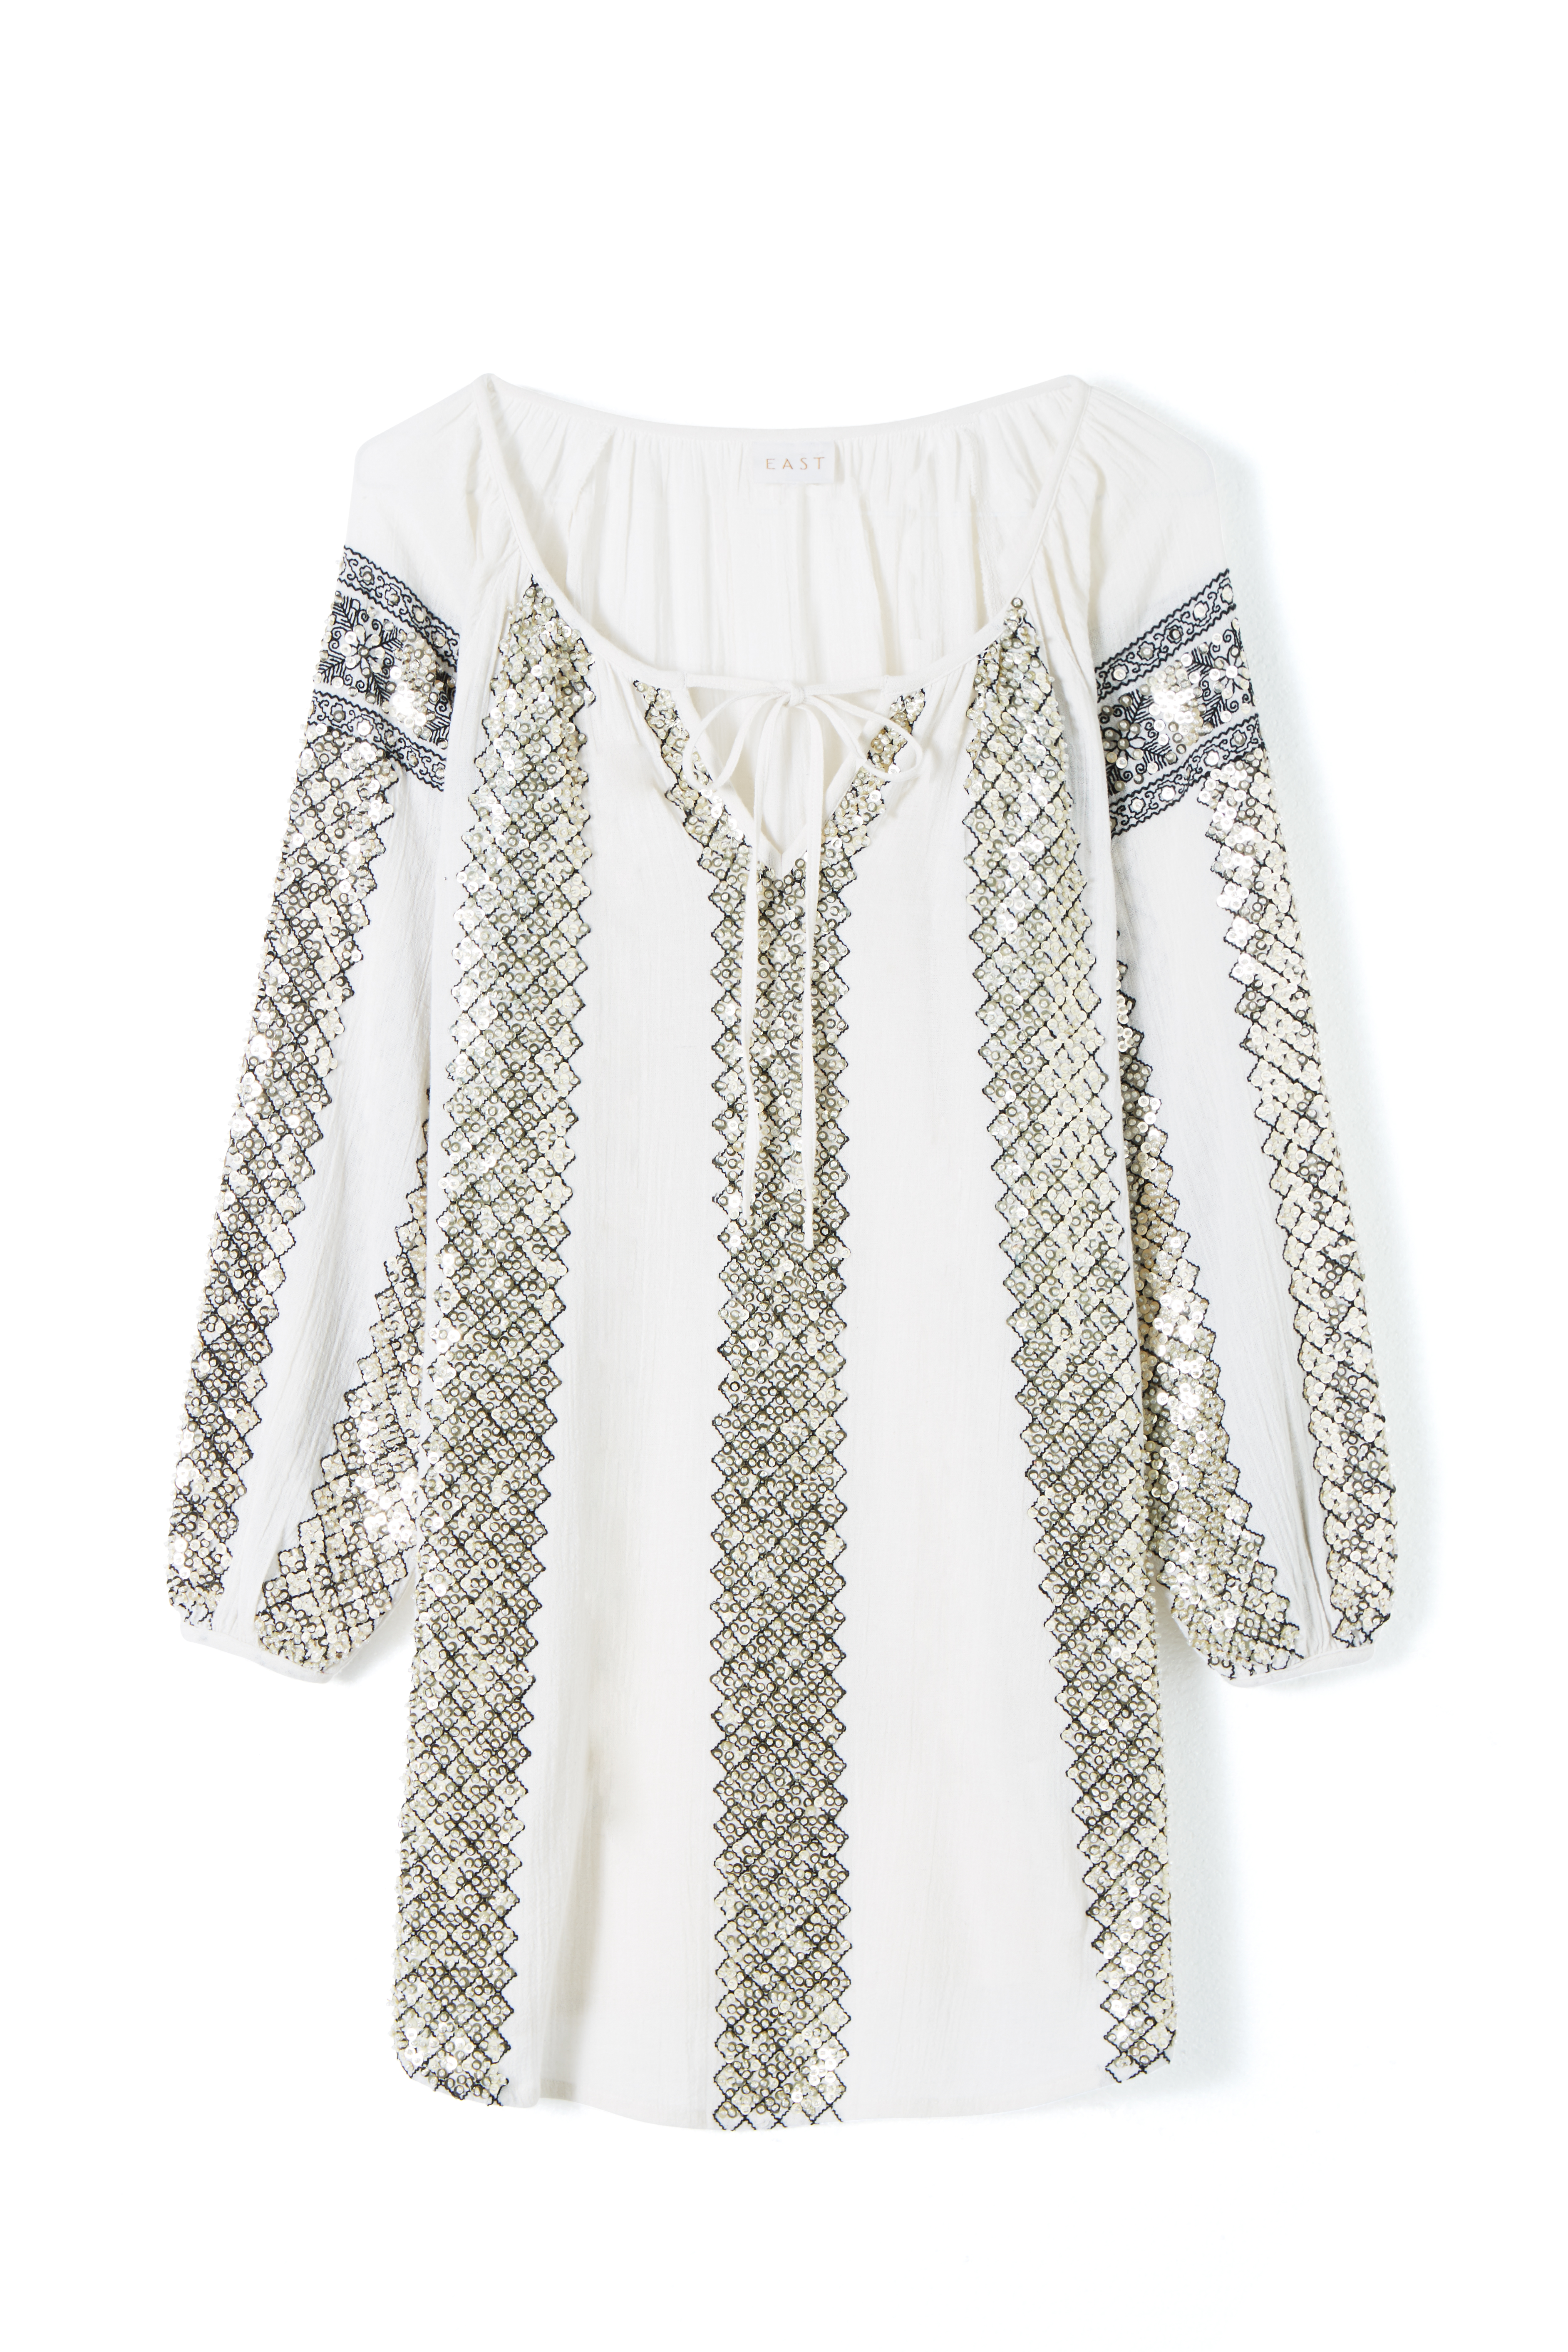 EAST Aut-Trans sequin tunic